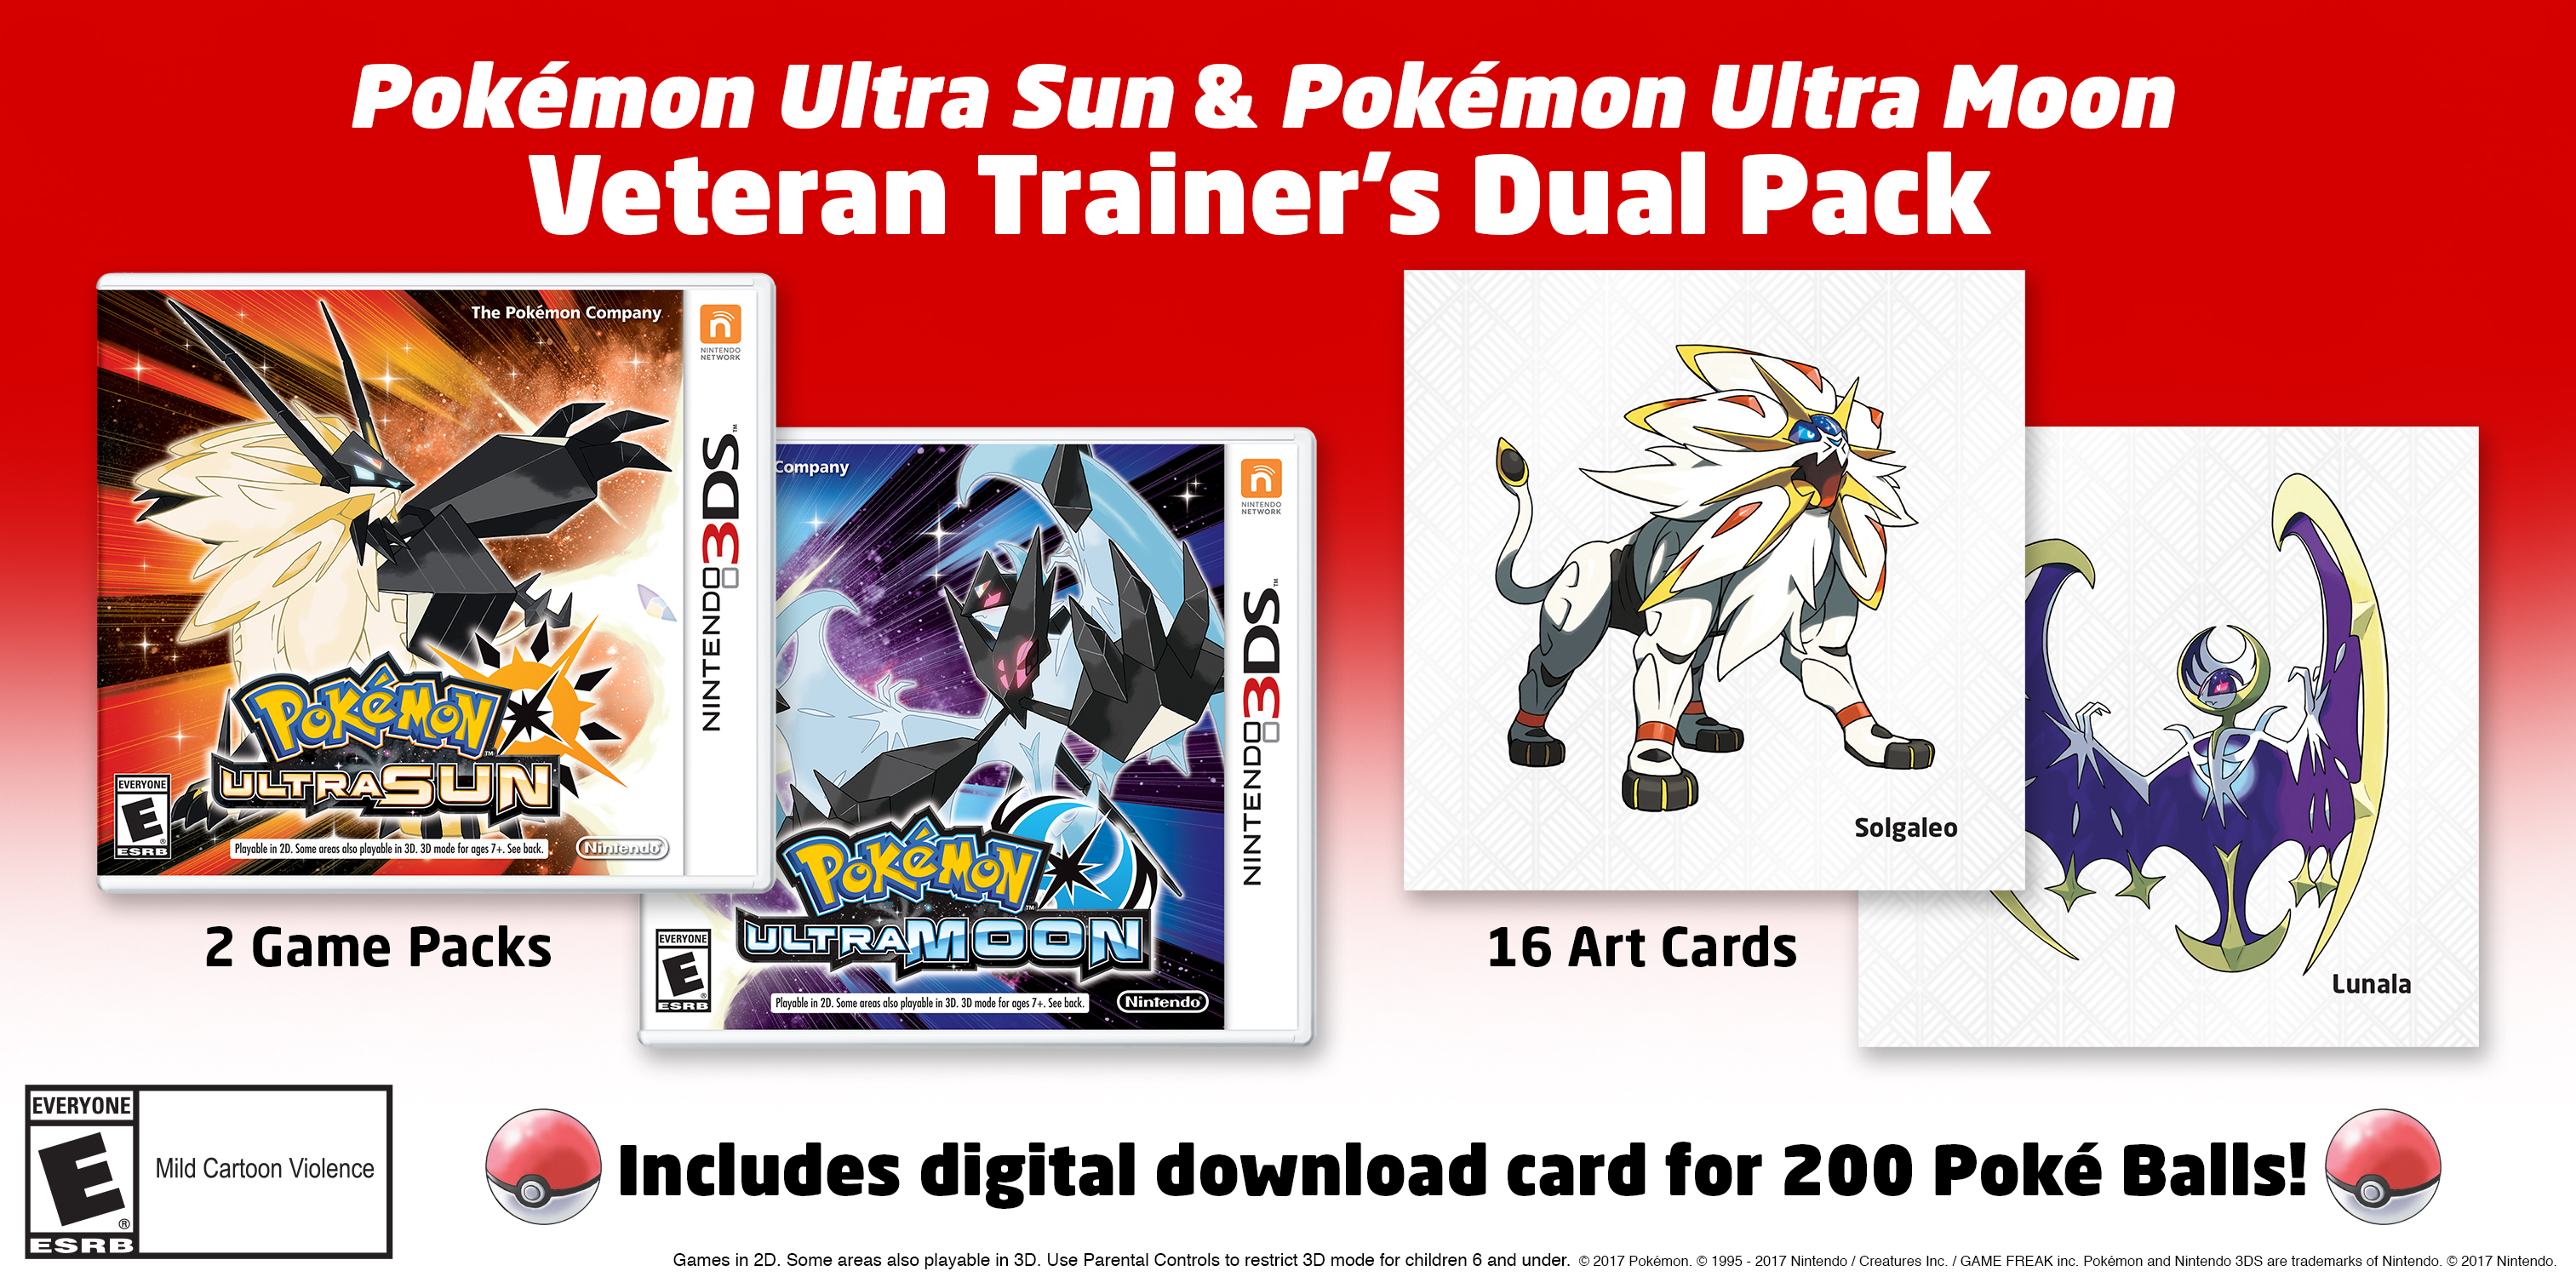 Pokemon Dual Pack